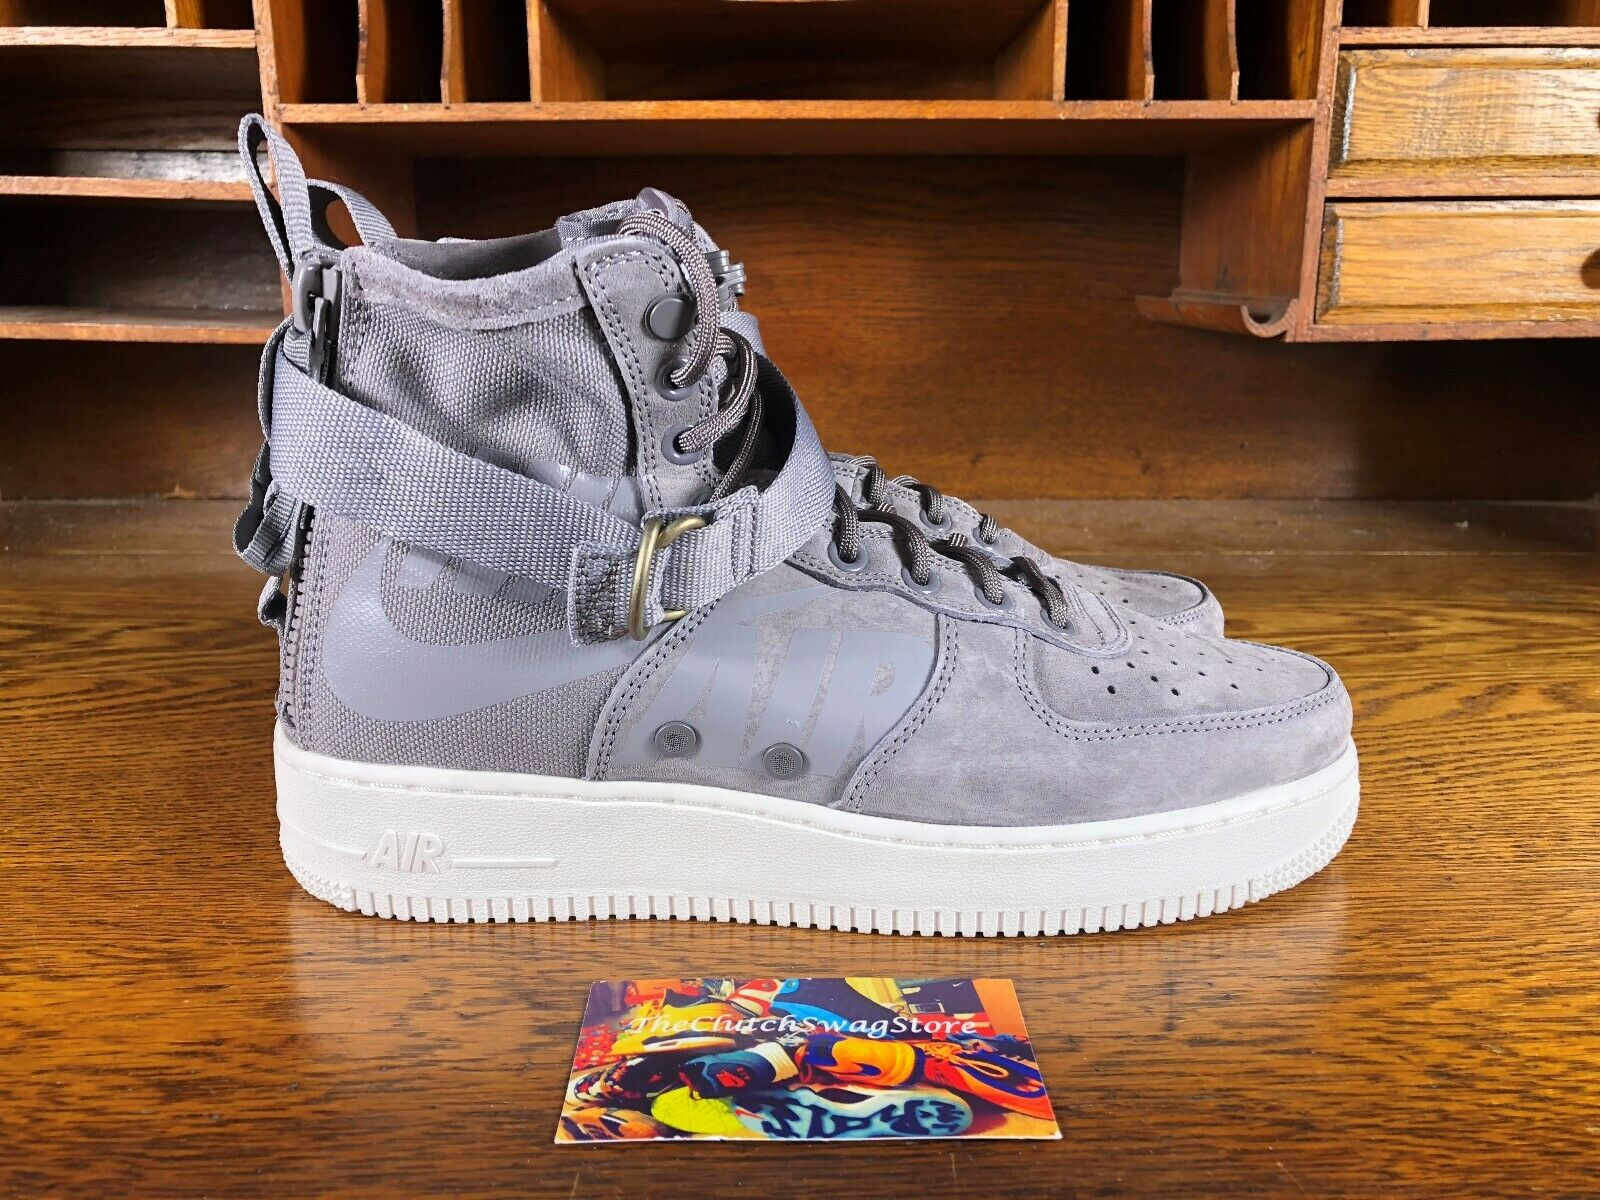 Nike SF-AF1 Mid Mens High Top shoes Gunsmoke Wolf Grey 917753-007 NEW Size 8